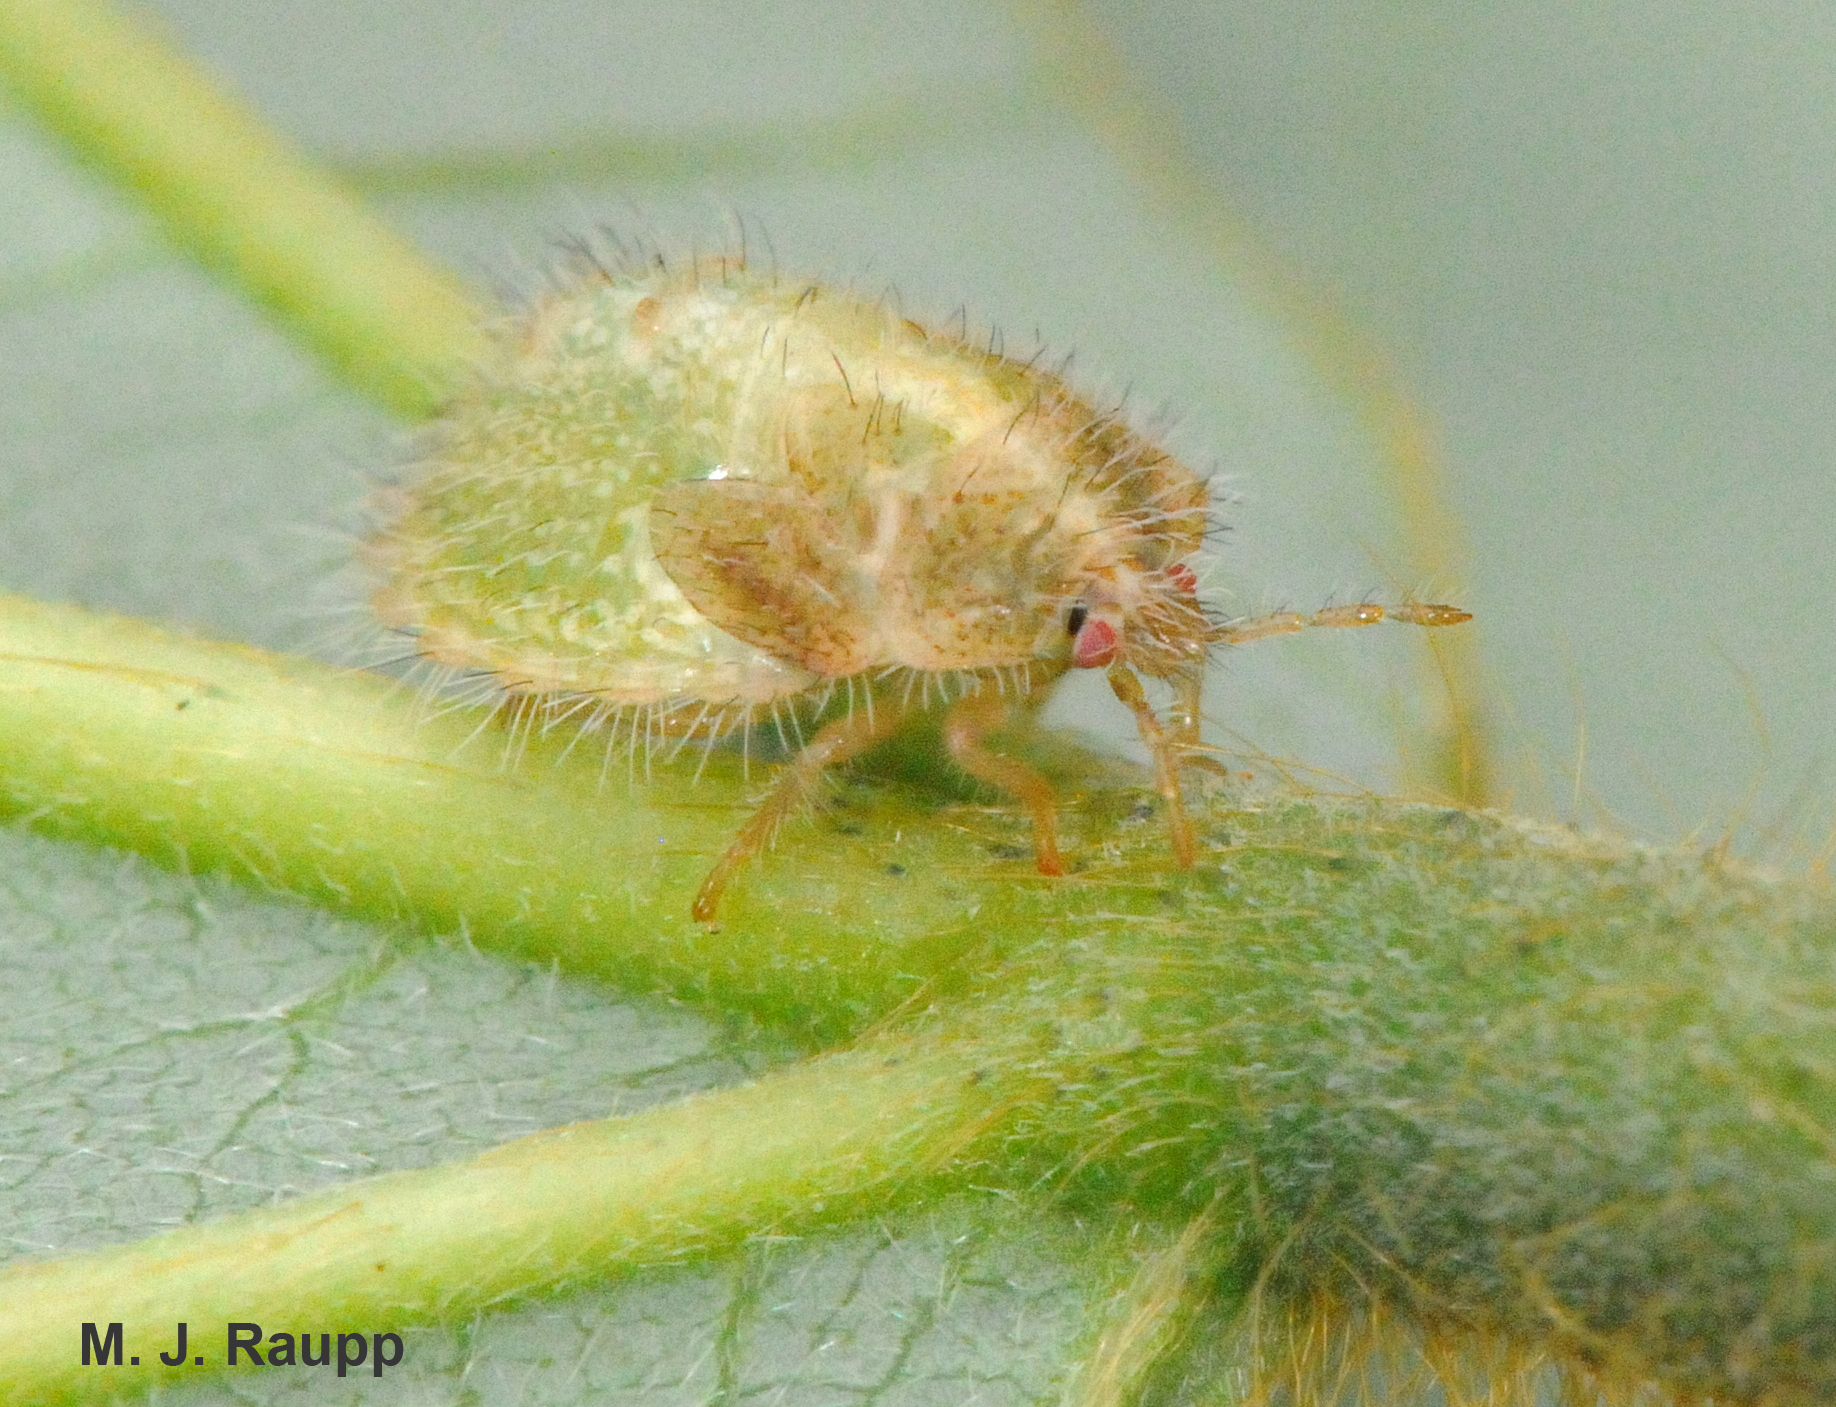 Nymphs of kudzu bugs are almost as hairy as the vines of kudzu on which they feed.